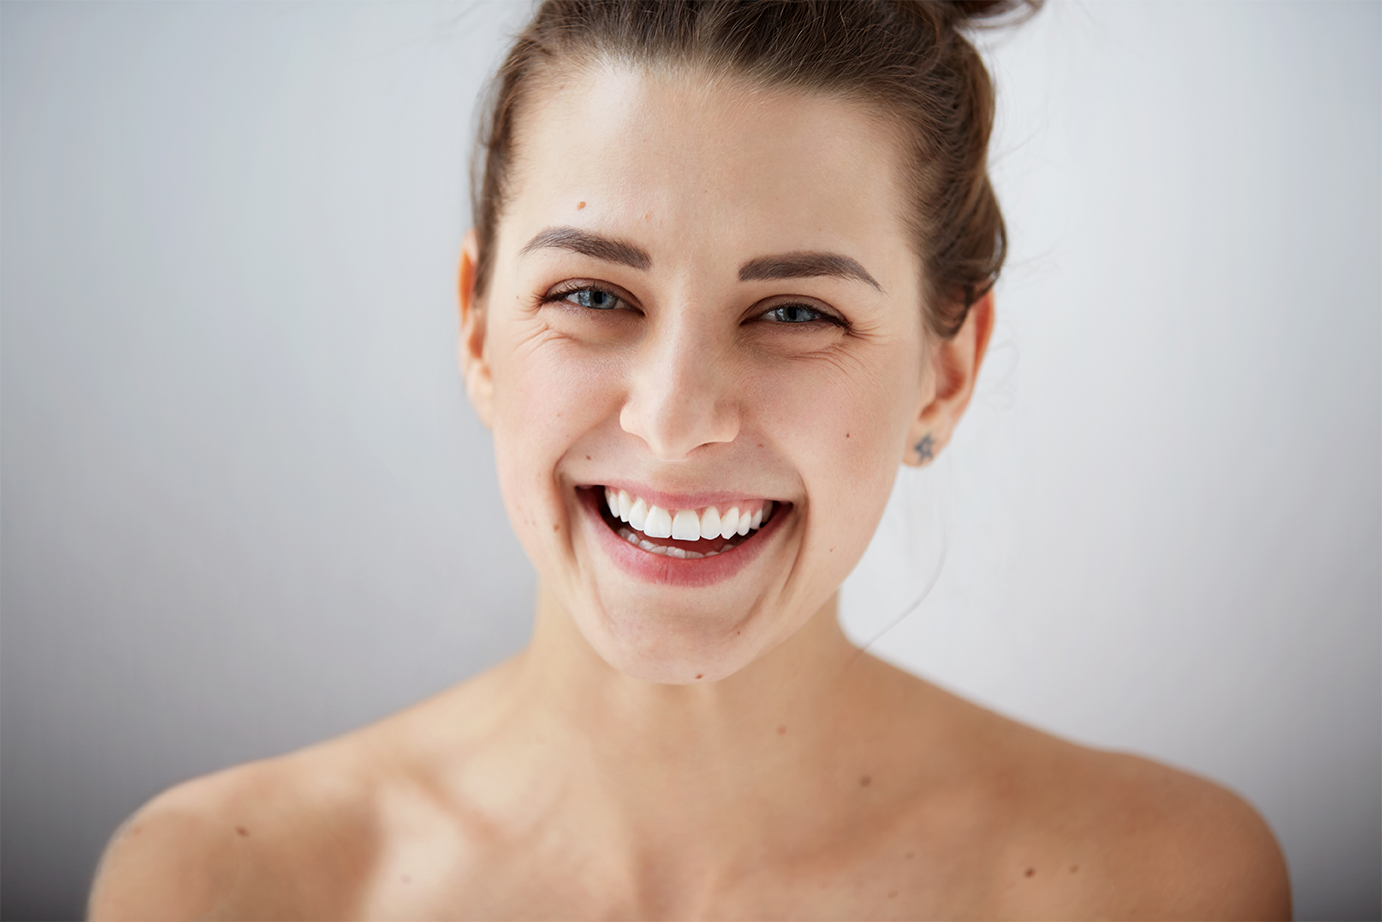 Beauty girl face Portrait. Beautiful model woman perfect fresh clean skin. Female looking at camera and smiling. Youth and skin care concept. Isolated on background